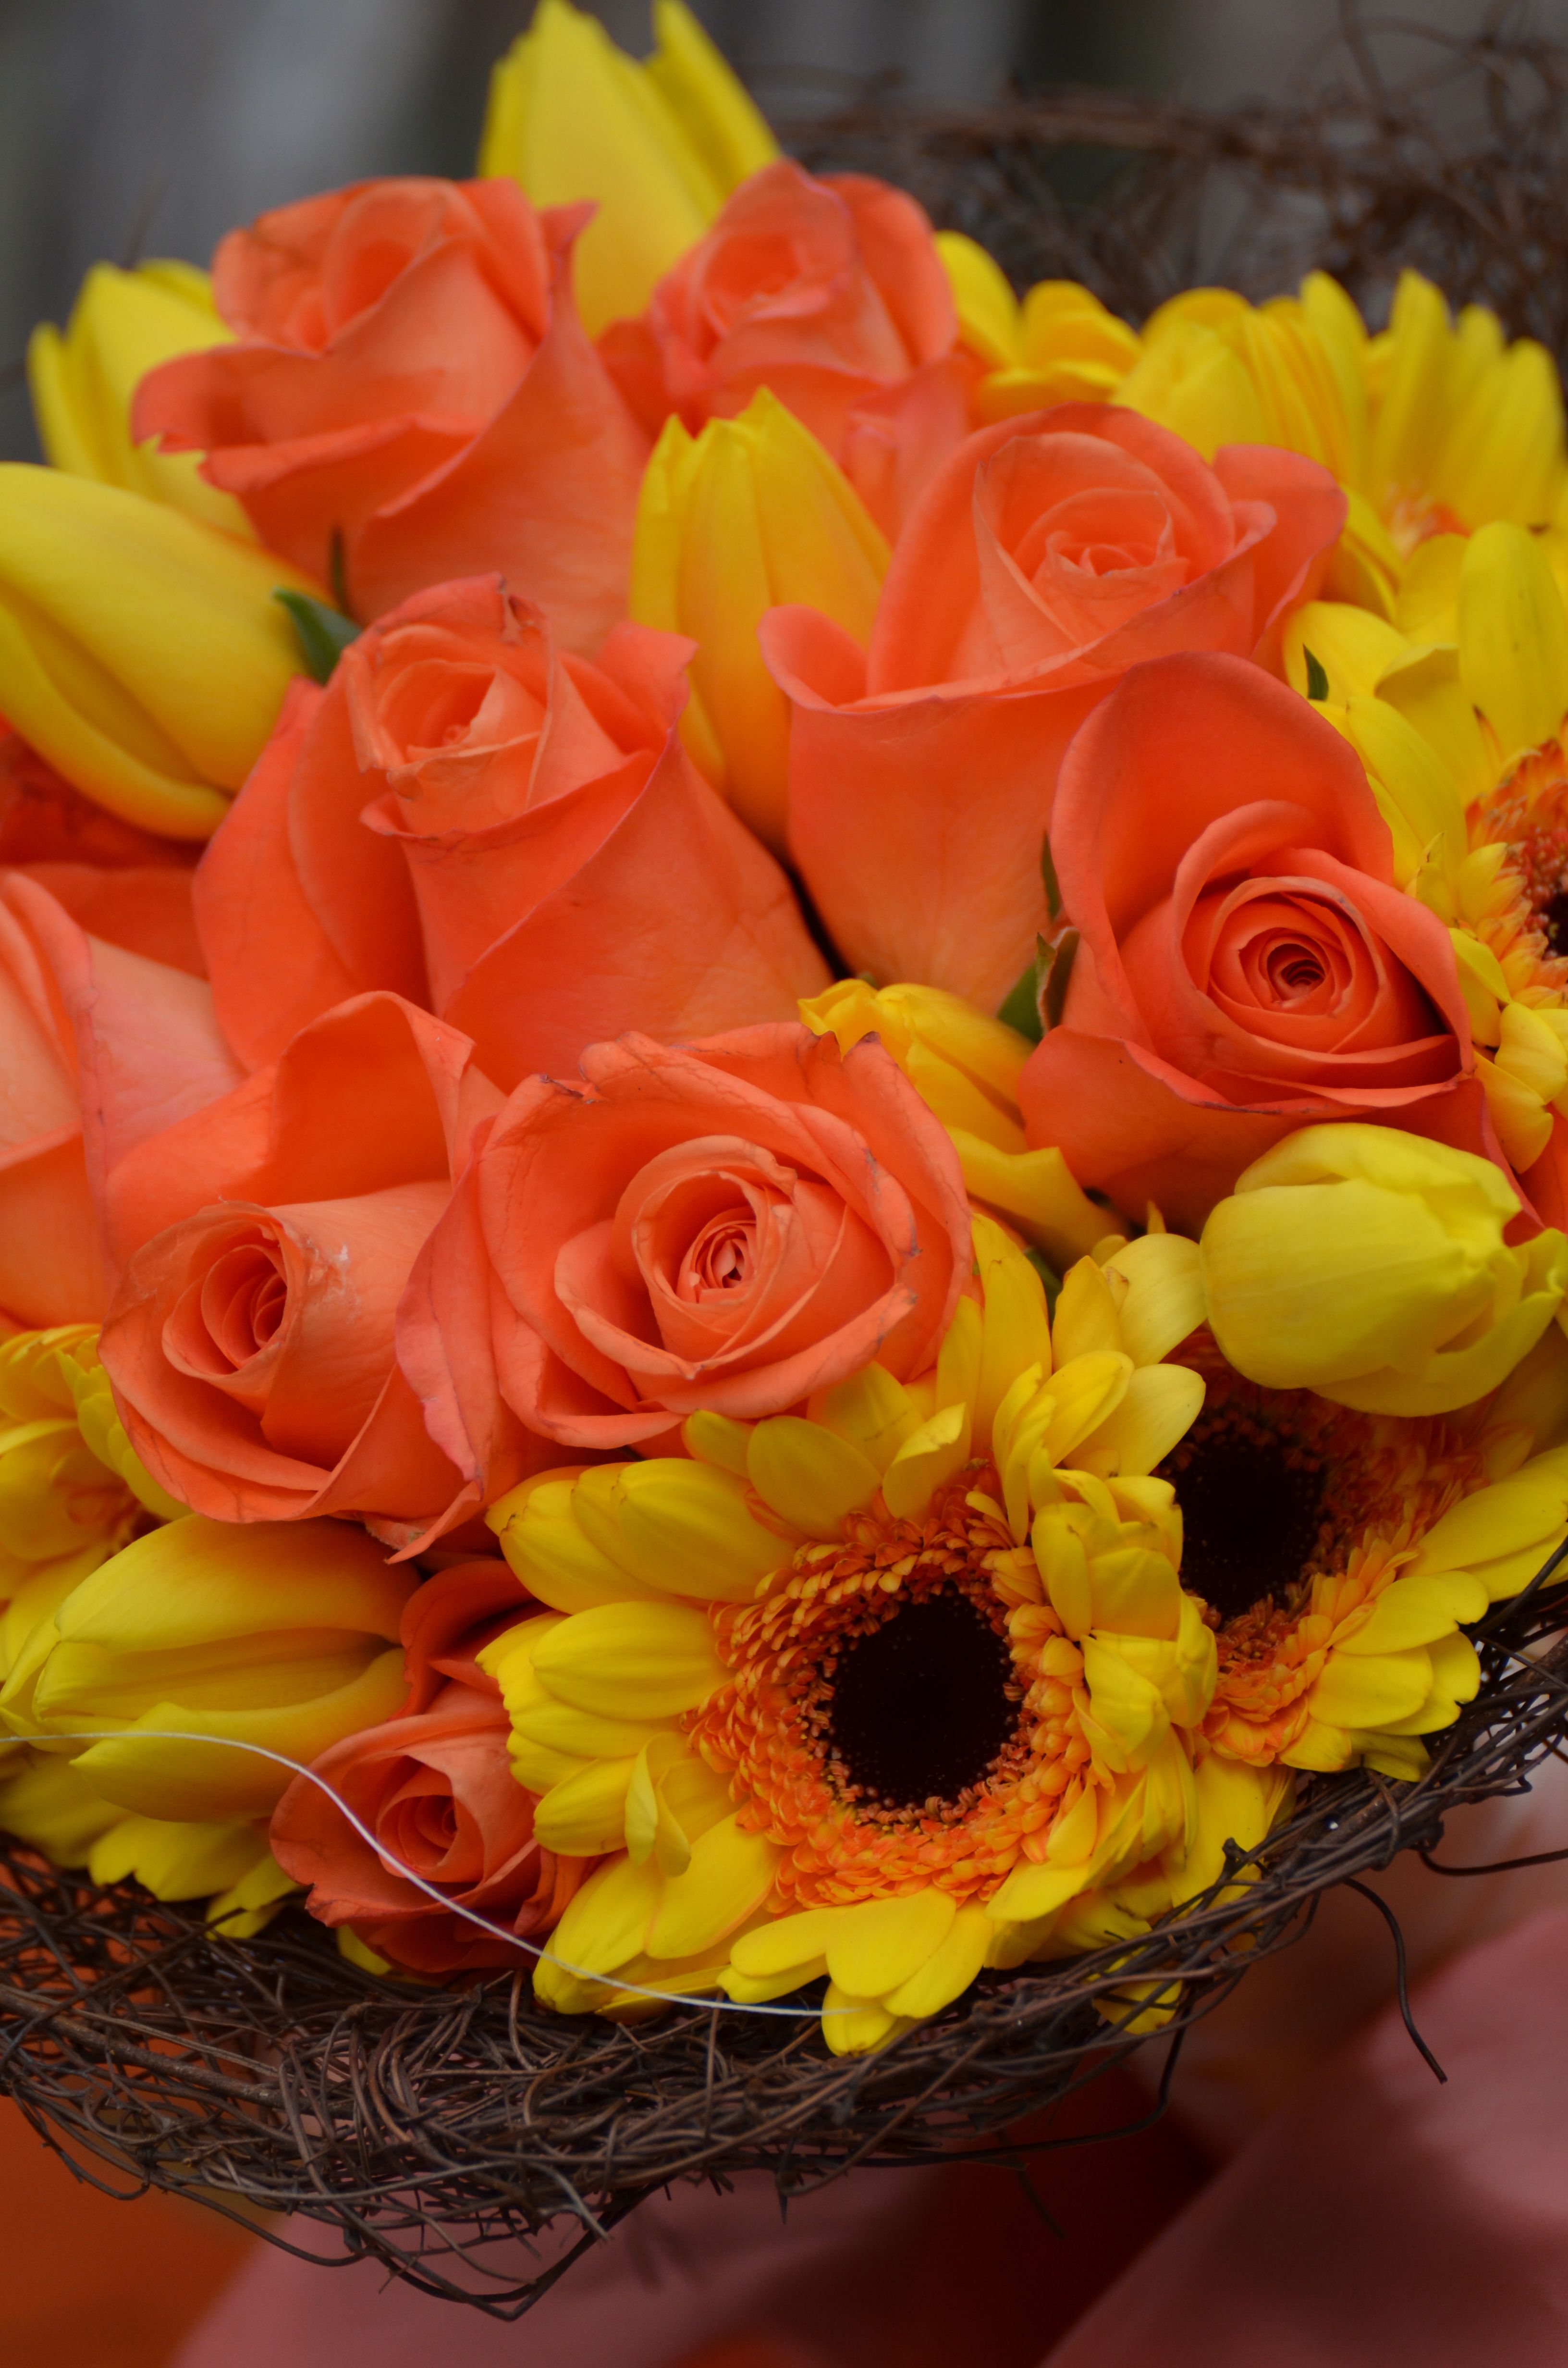 Bouquet Chic Flowers Bouquet Chic Orange And Yellow Flowers